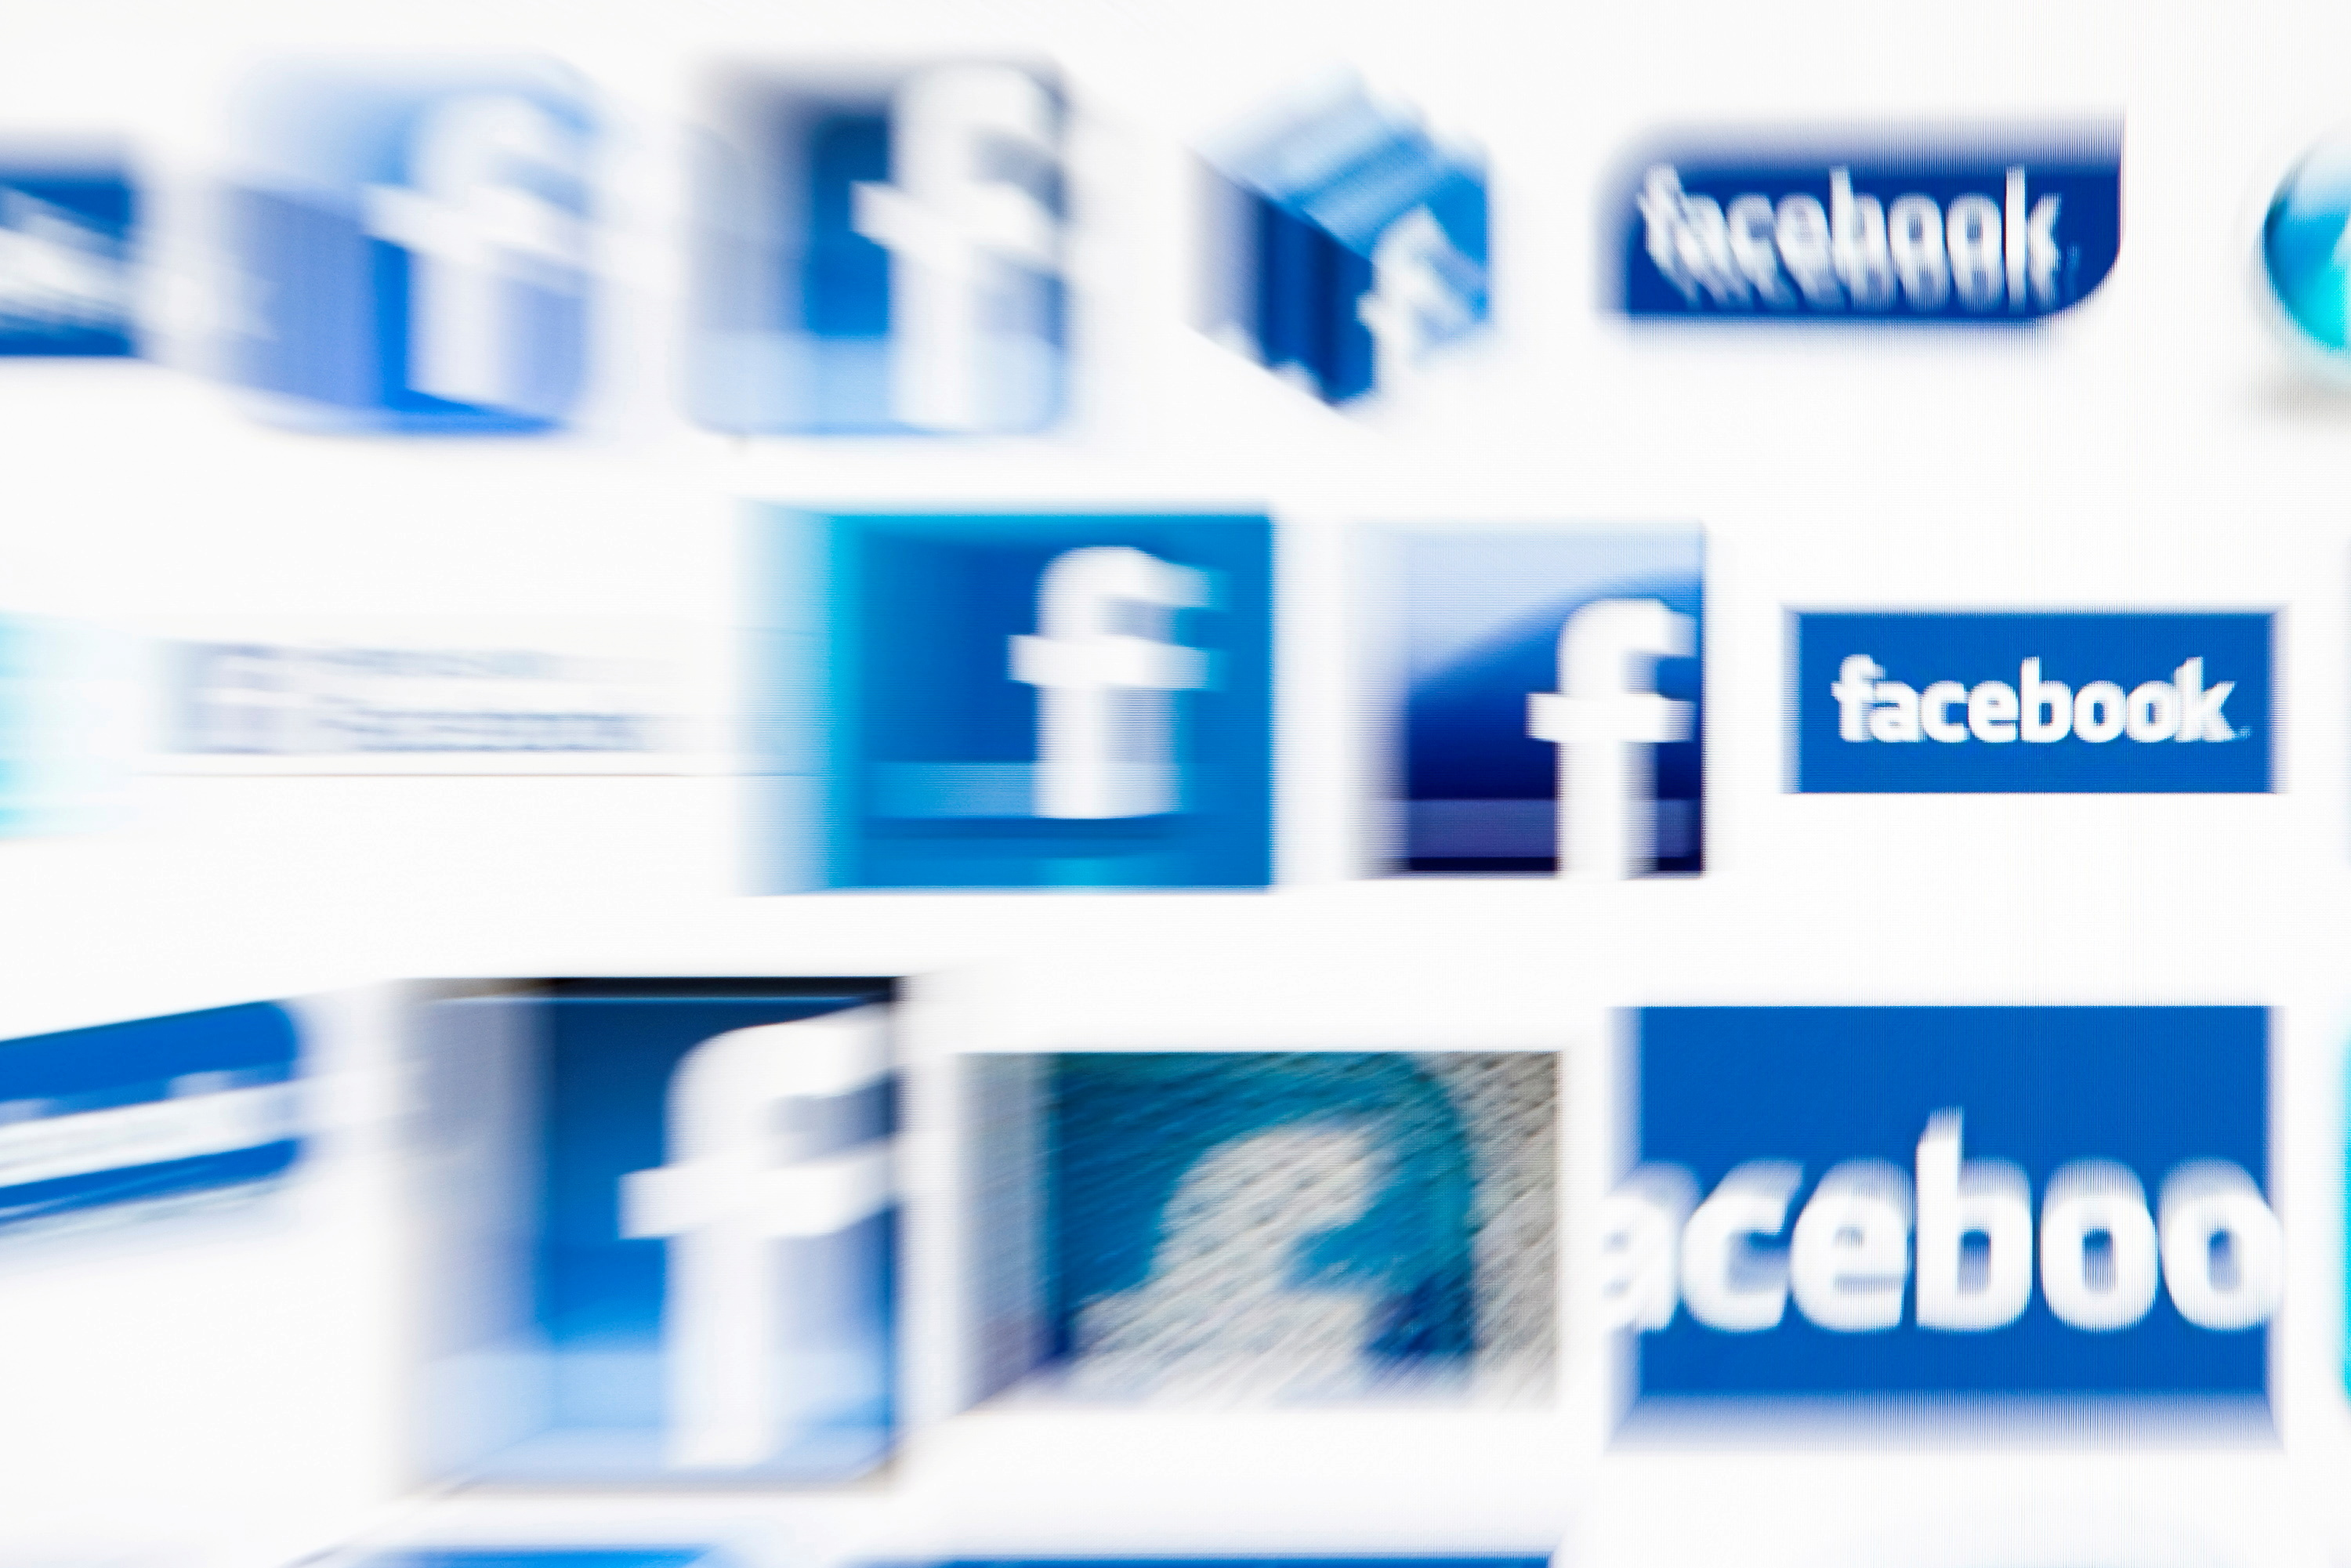 Facebook logos on a computer screen are seen in this photo illustration taken in Lavigny May 16, 2012. REUTERS/Valentin Flauraud/File Photo